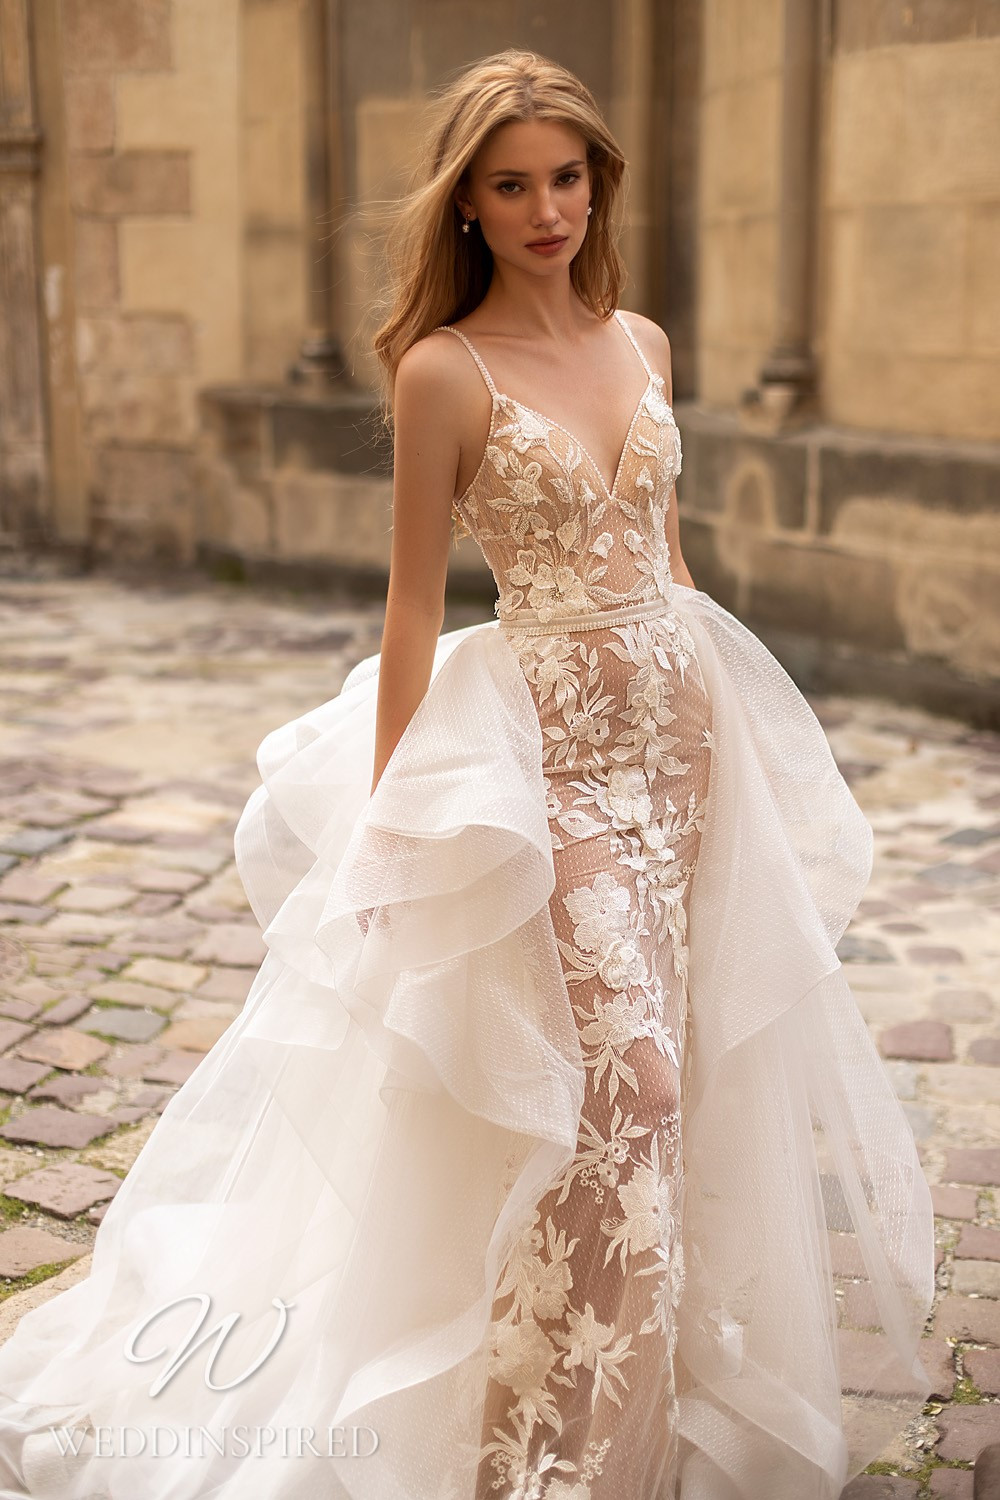 A WONÁ Concept 2021 tulle and lace mermaid wedding dress with a detachable skirt